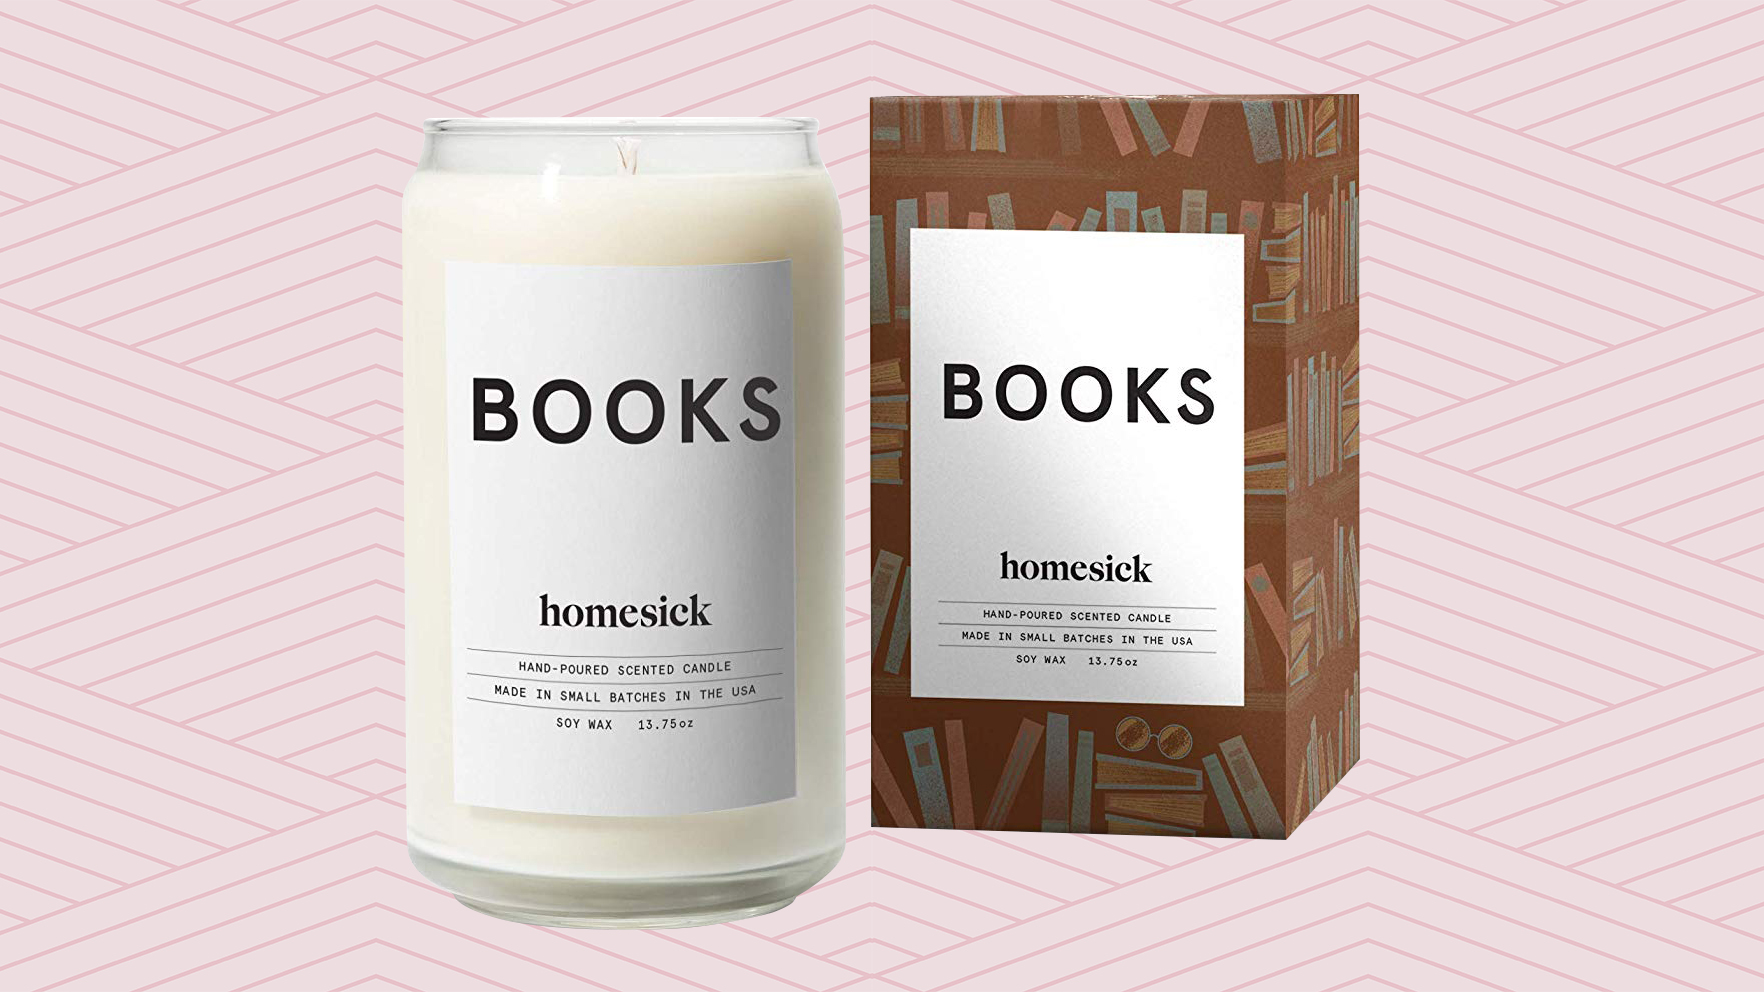 books-candles: affordable gifts for readers